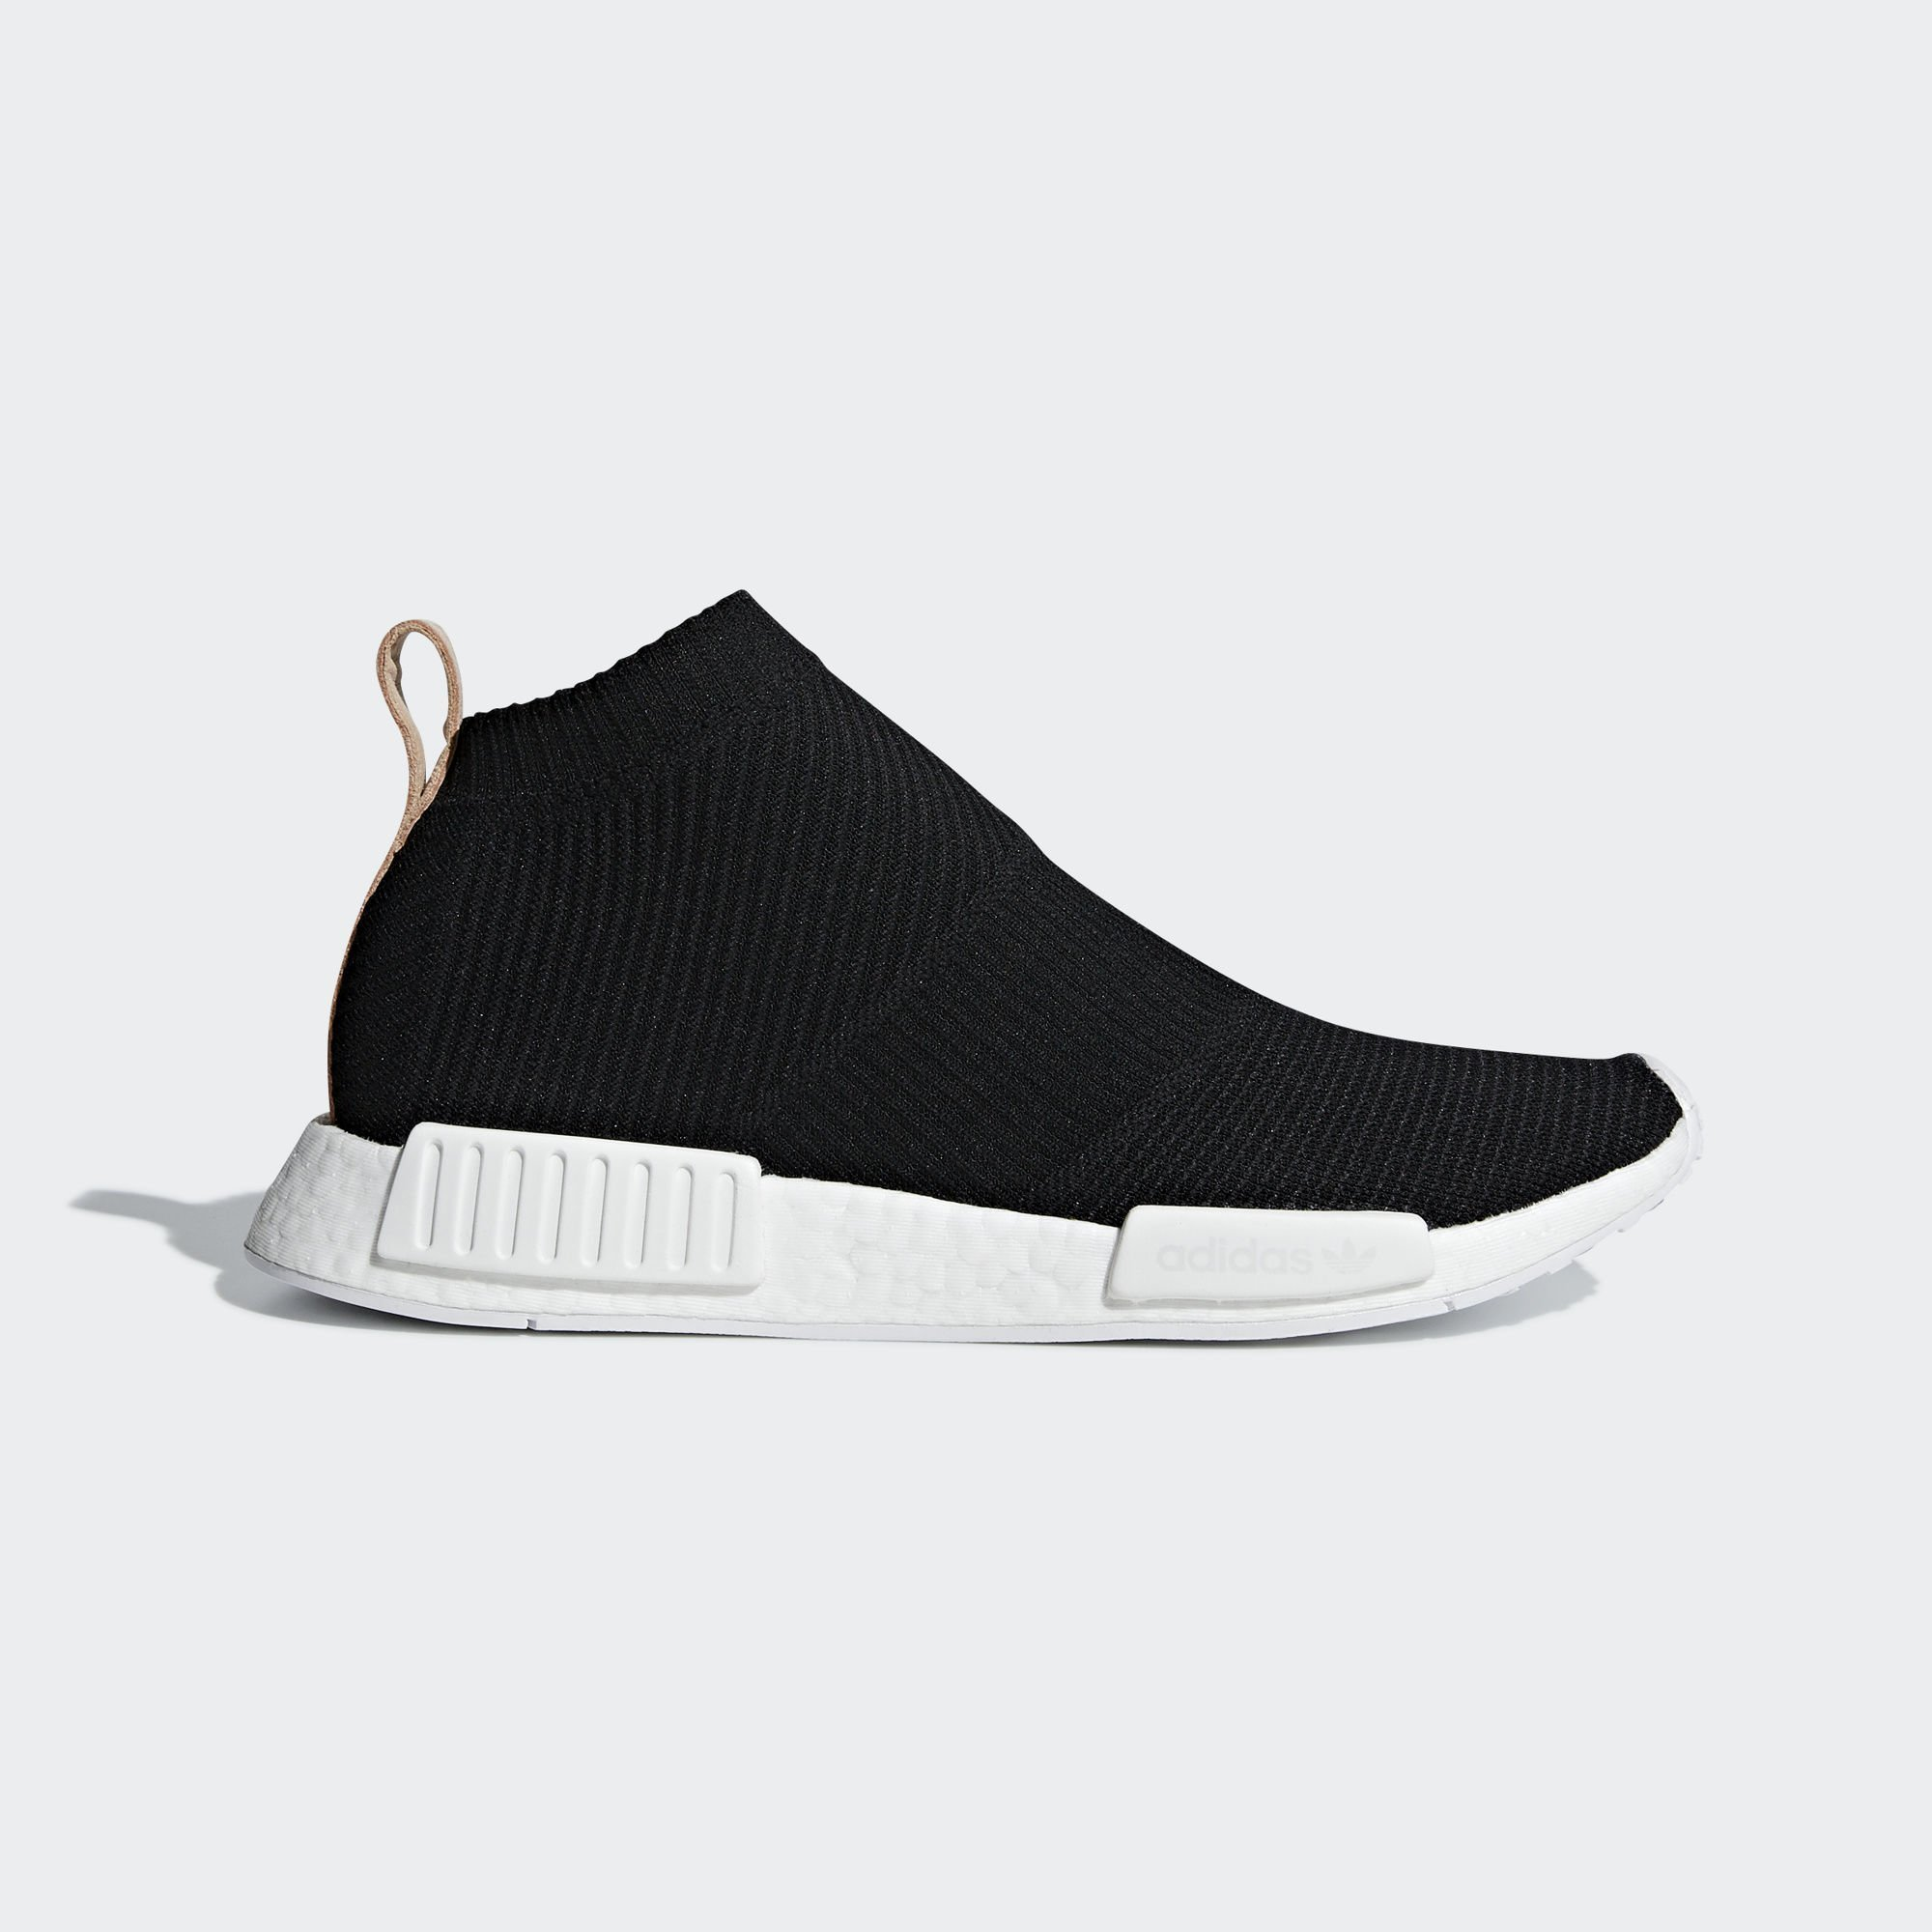 adidas NMD CS1 City Sock 'Black' (AQ0948)